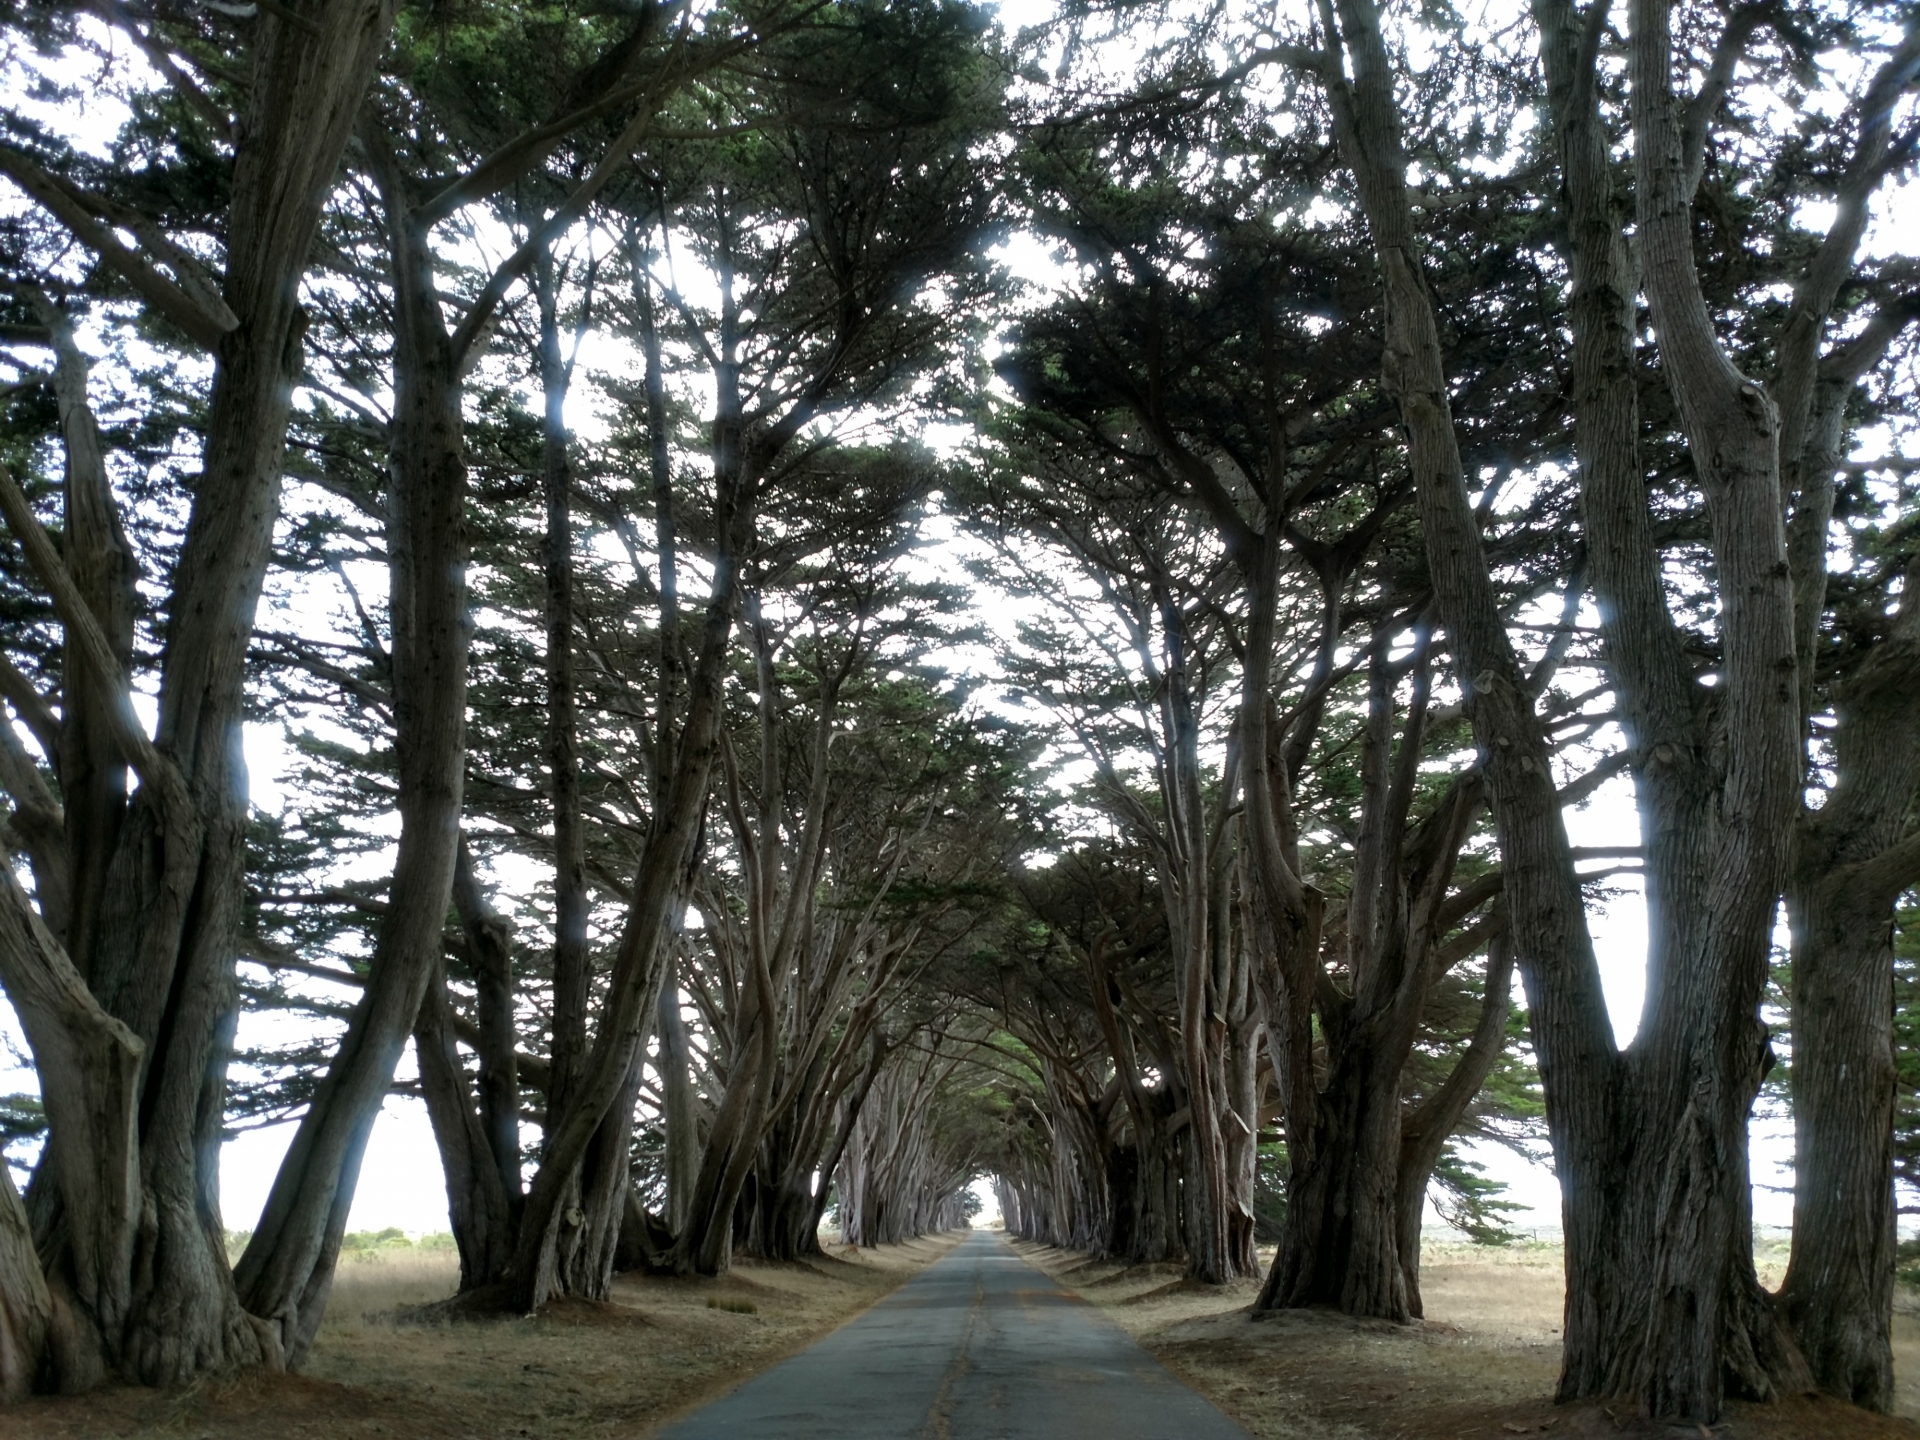 Tunnel of cypress trees lining the road